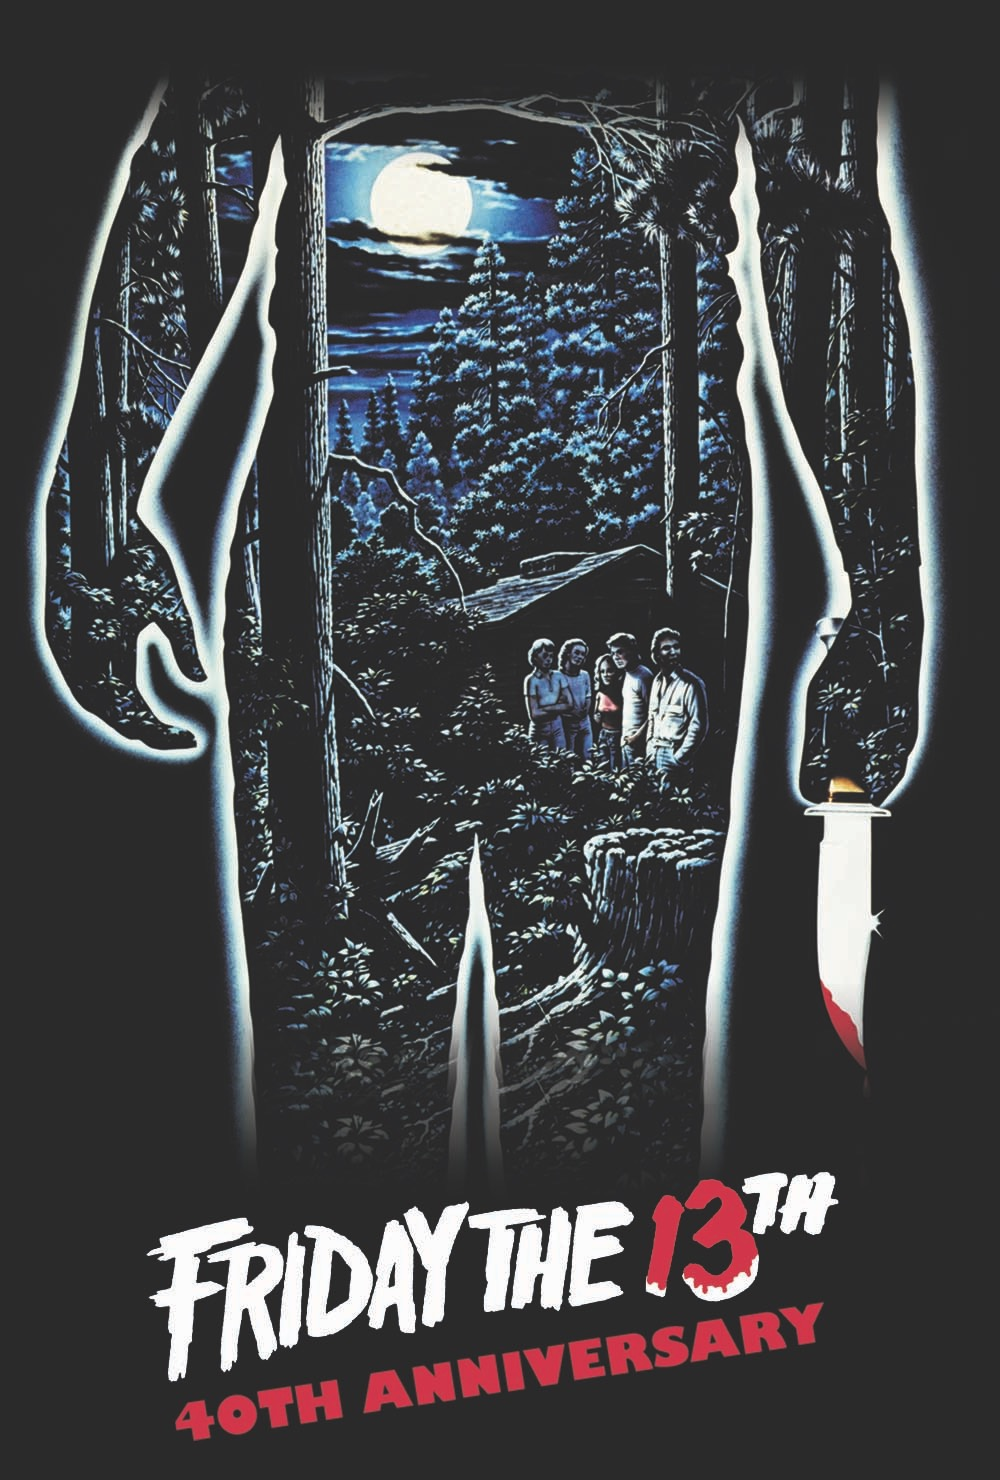 Still of Friday the 13th - 40th Anniversary